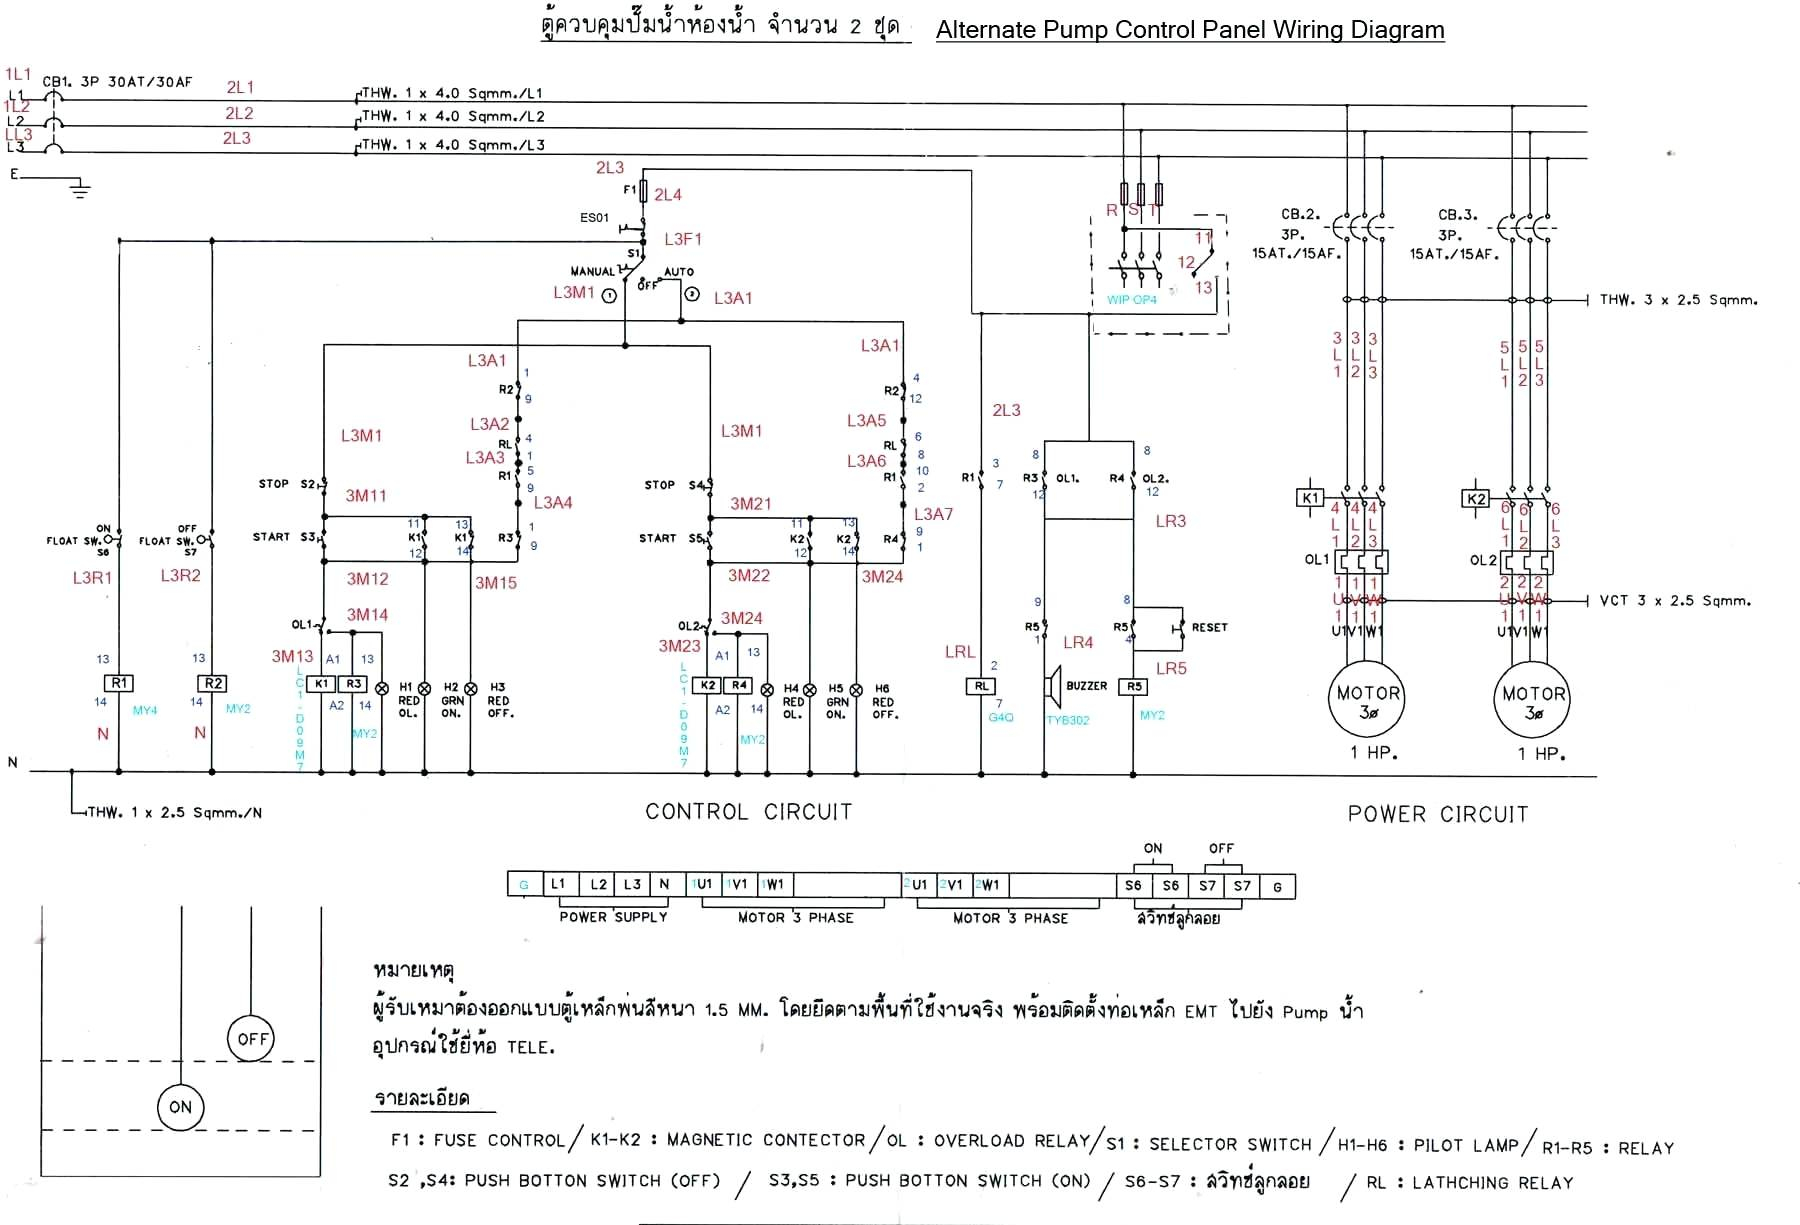 hight resolution of fire pump controller wiring diagram collection sel engine fire pump controller wiring diagram best of